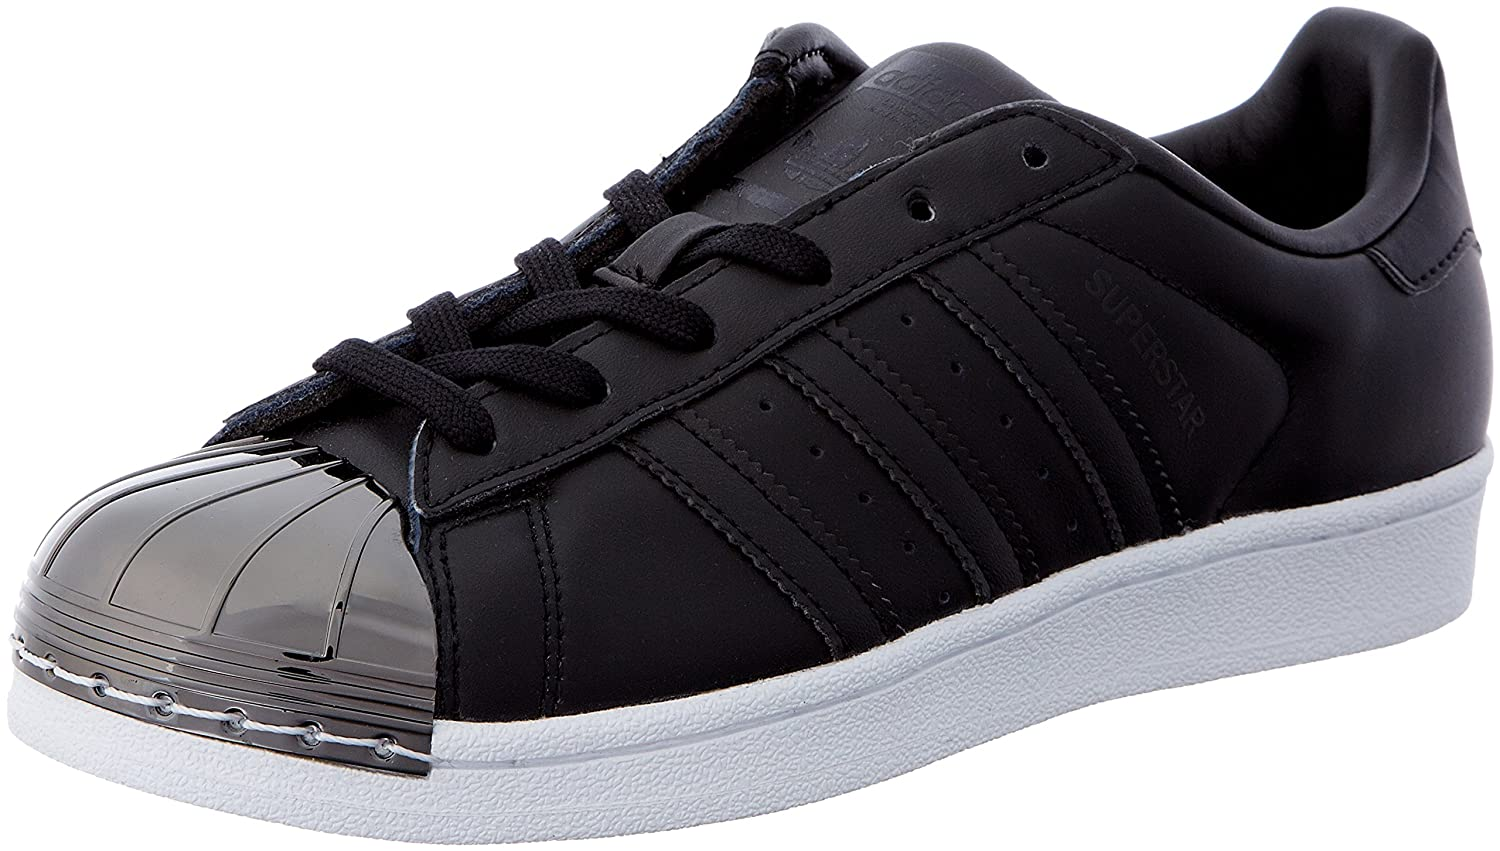 adidas Superstar Metal Toe, Sneakers Basses Femme Metal Noir Sneakers adidas (Cblack/Cblack/Ftwwht) 8c7ab04 - robotanarchy.space